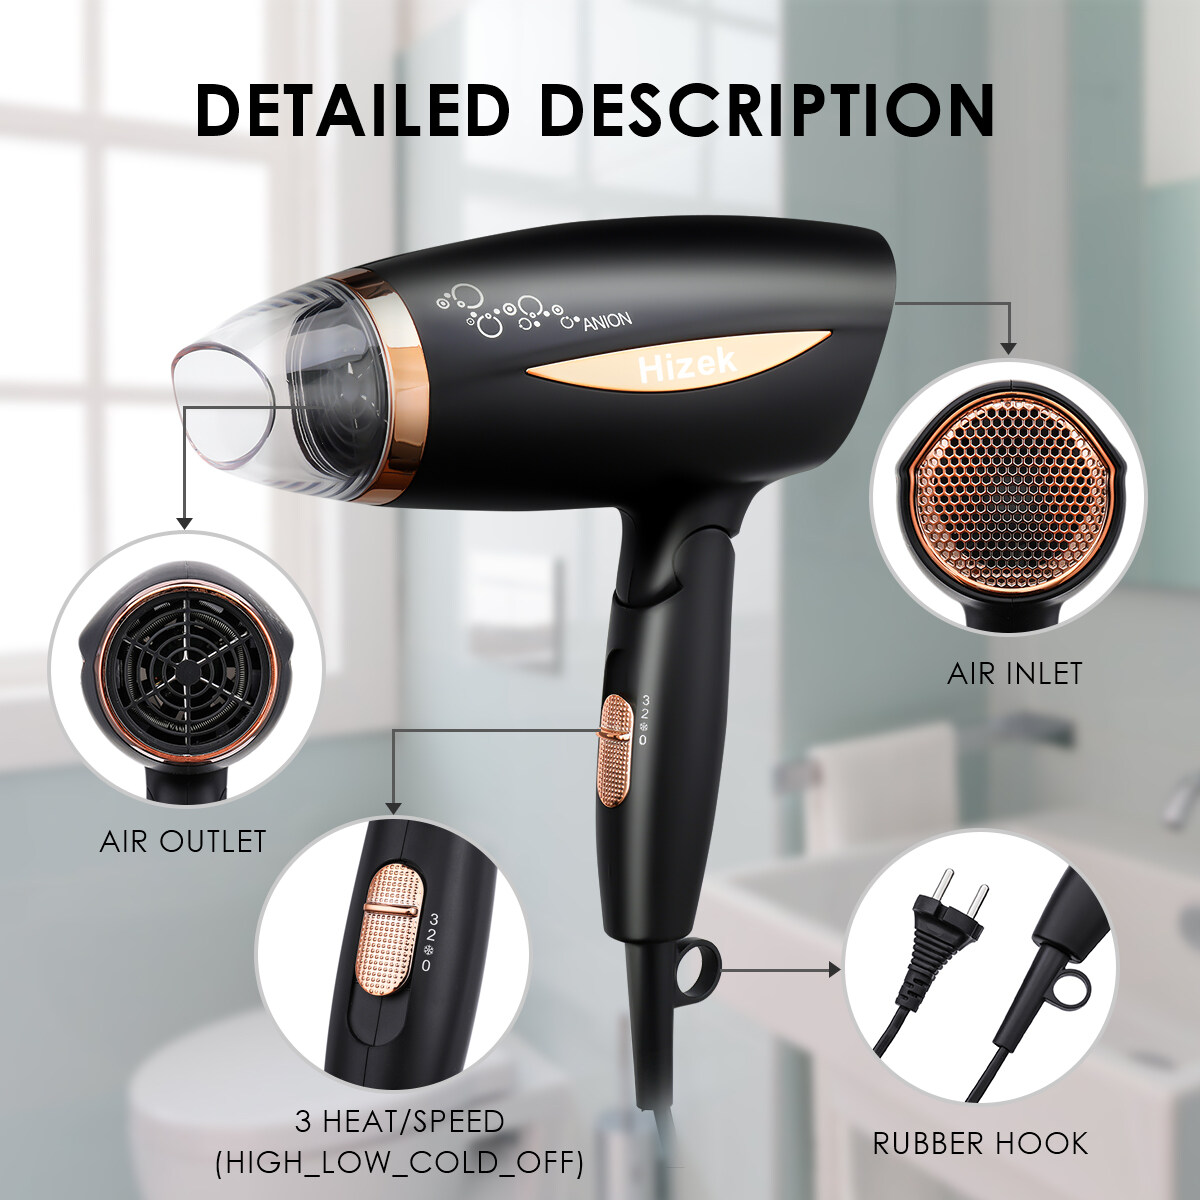 Hizek Professional Hair Dryer 2000W, Compact Travel Ionic Hair Dryer with 3 Heat Levels & 3 Air Flow Control Speeds, Black